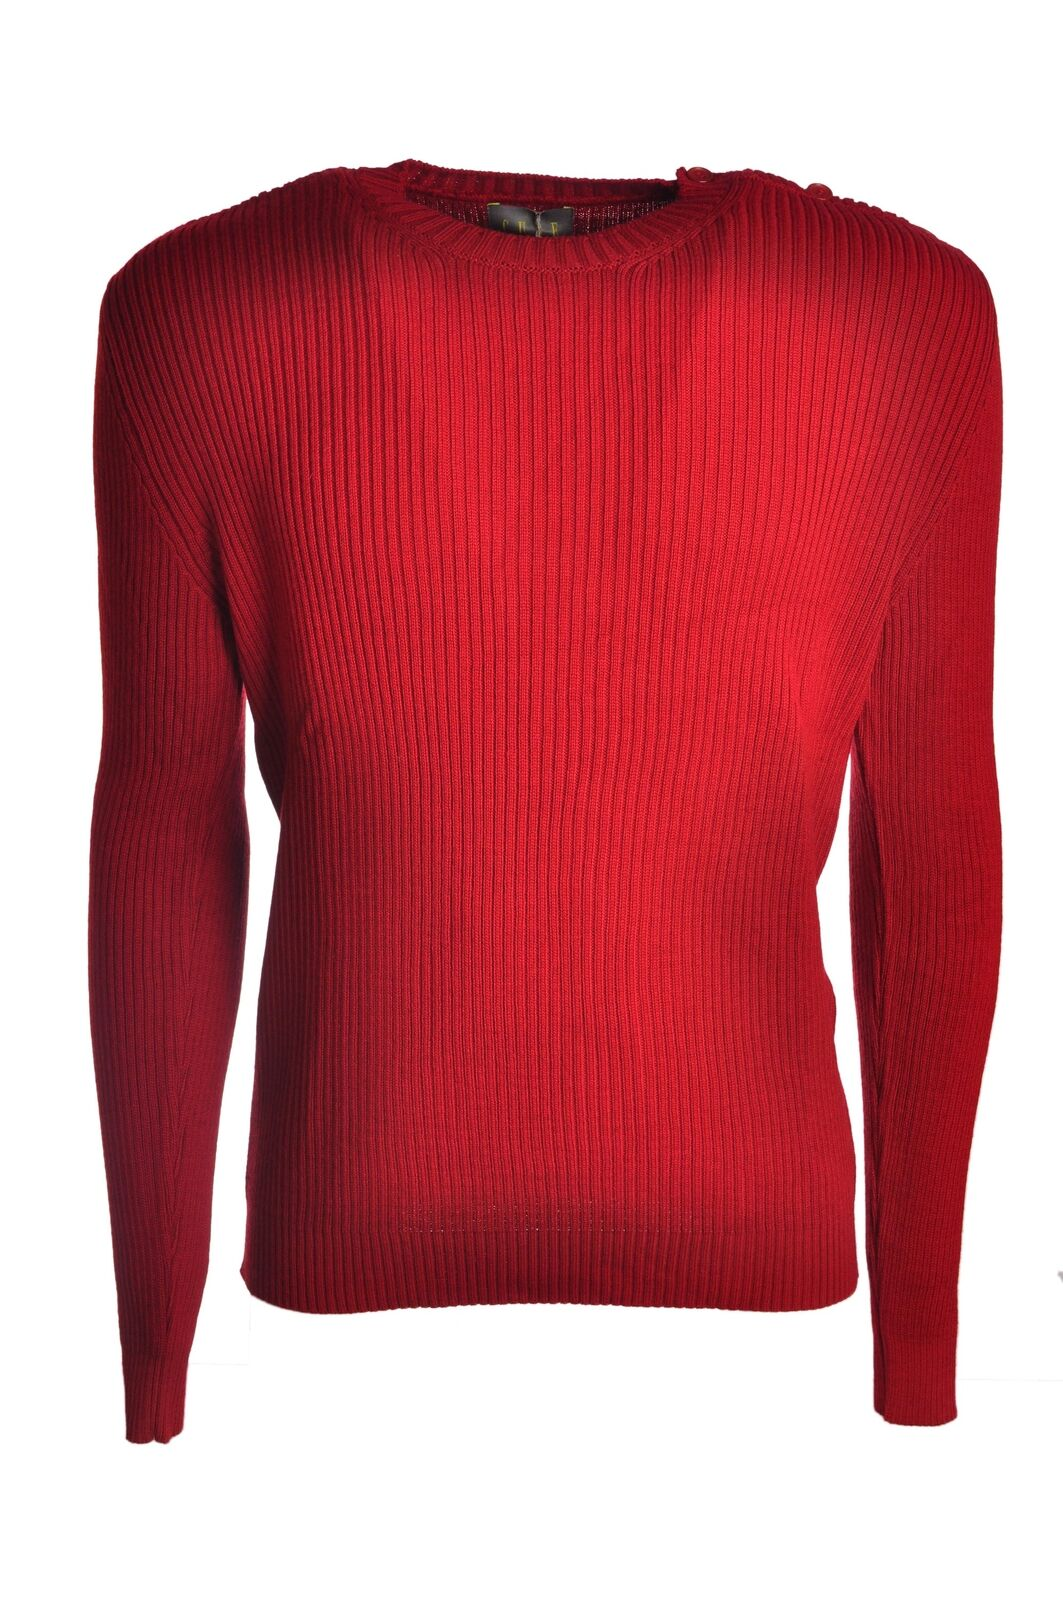 Cube  -  Sweaters - Male - ROT - 4366226A184113